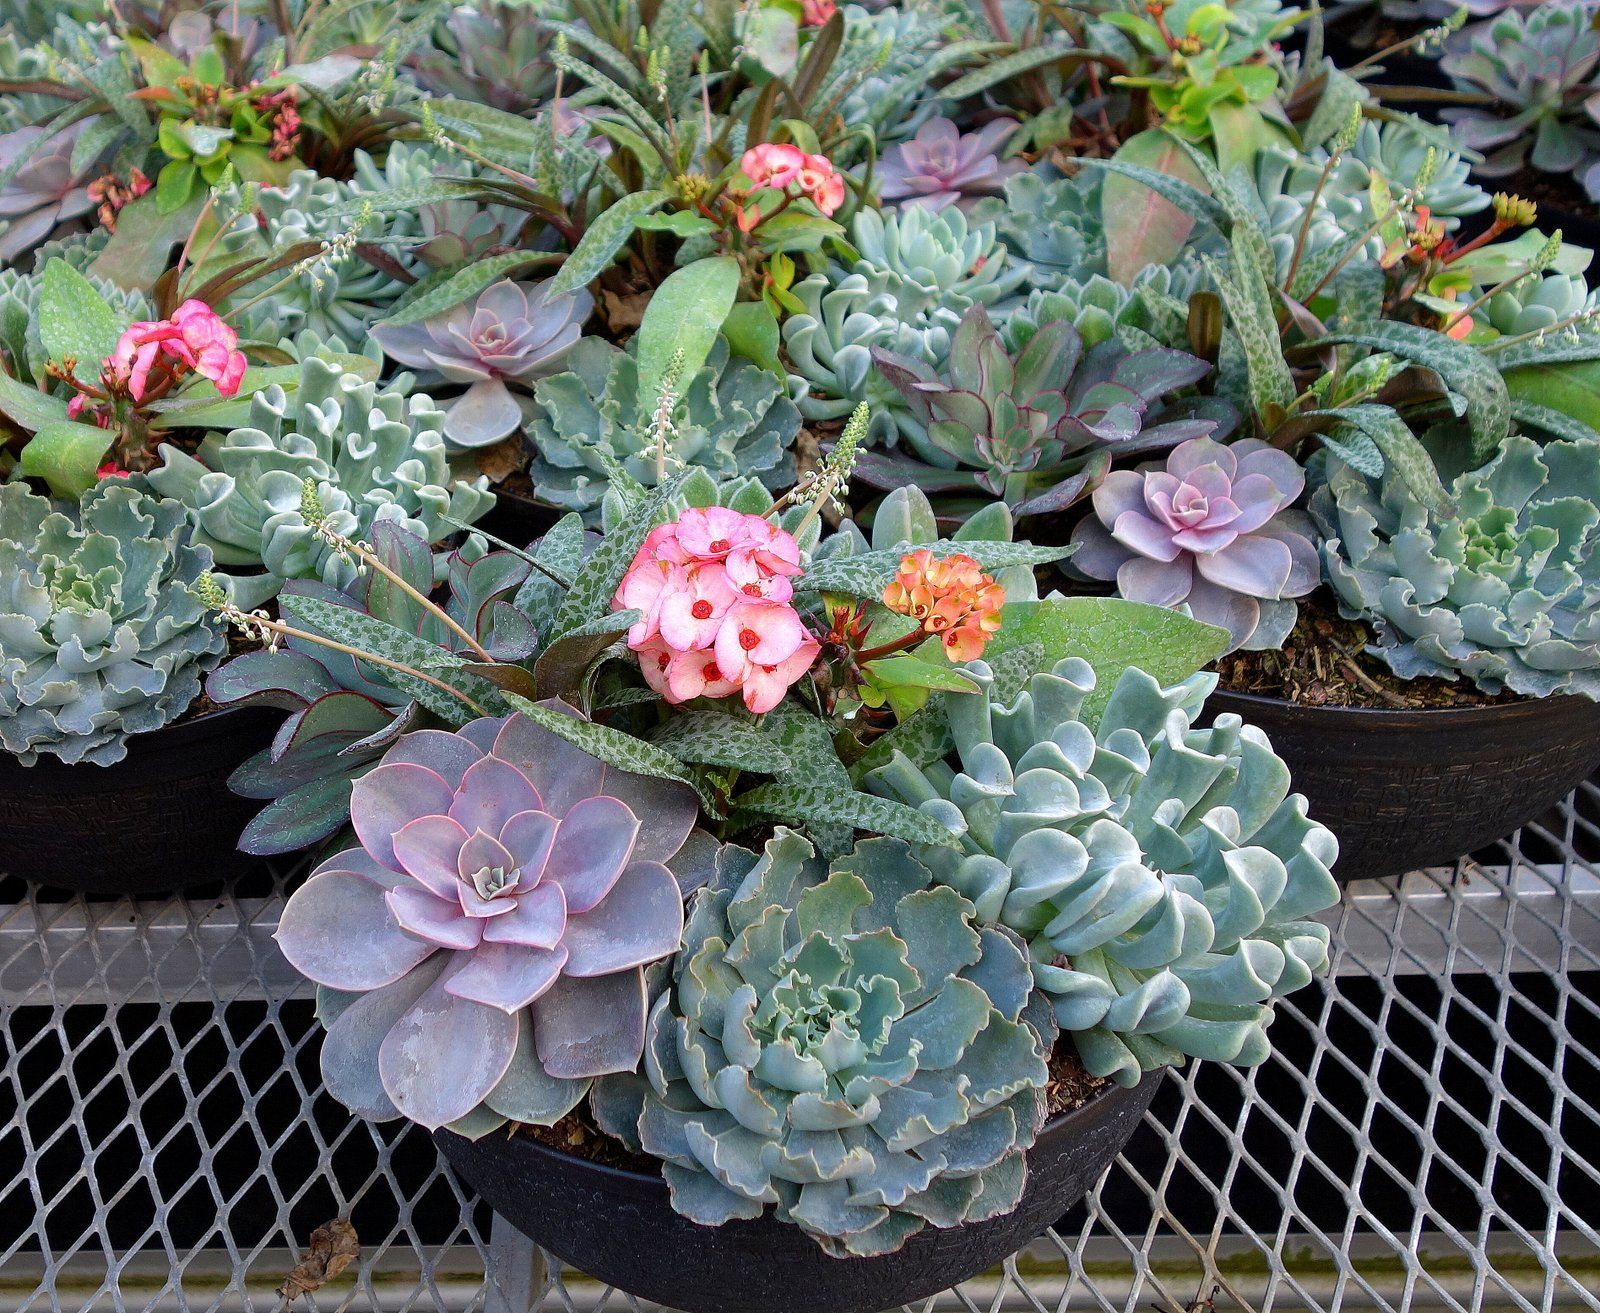 Beautiful Succulent Garden Made Bowls Are Available At Your Florida Home Depot Center Inspiration Pinterest Gardening